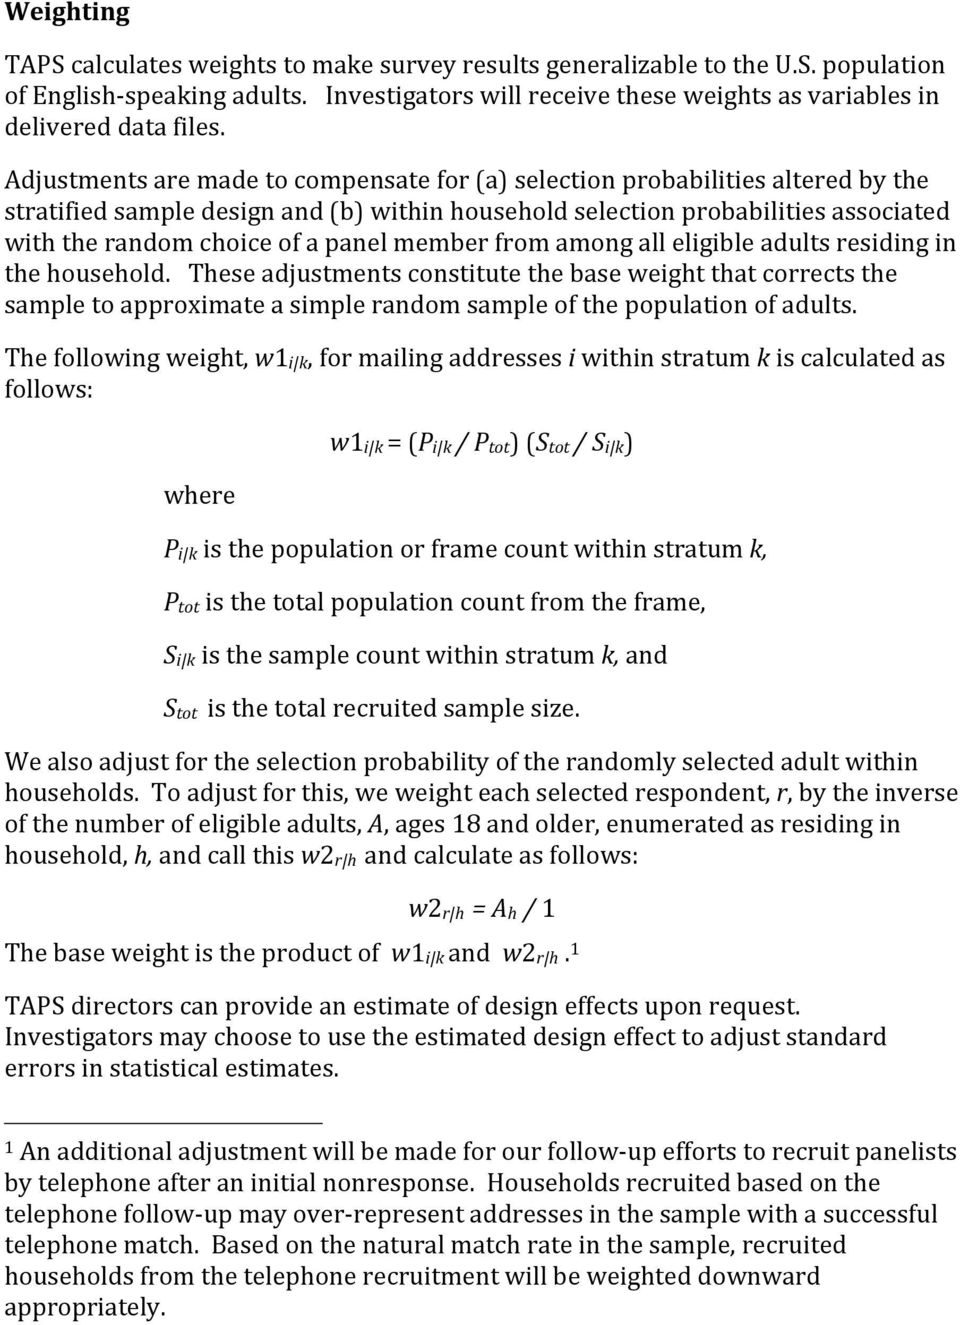 Adjustments are made to compensate for (a) selection probabilities altered by the stratified sample design and (b) within household selection probabilities associated with the random choice of a